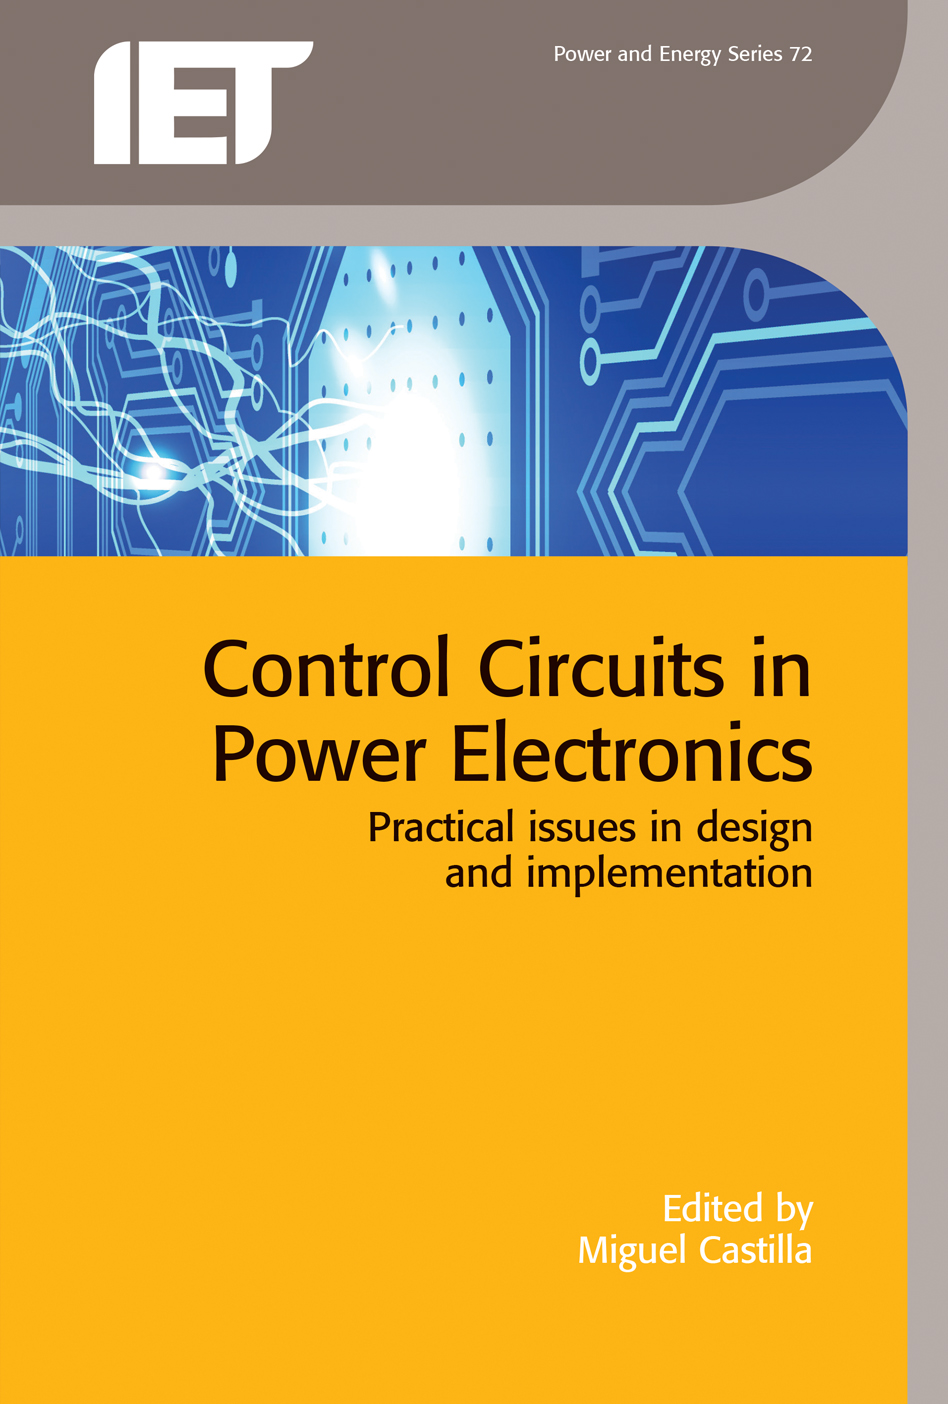 Control Circuits in Power Electronics, Practical issues in design and implementation